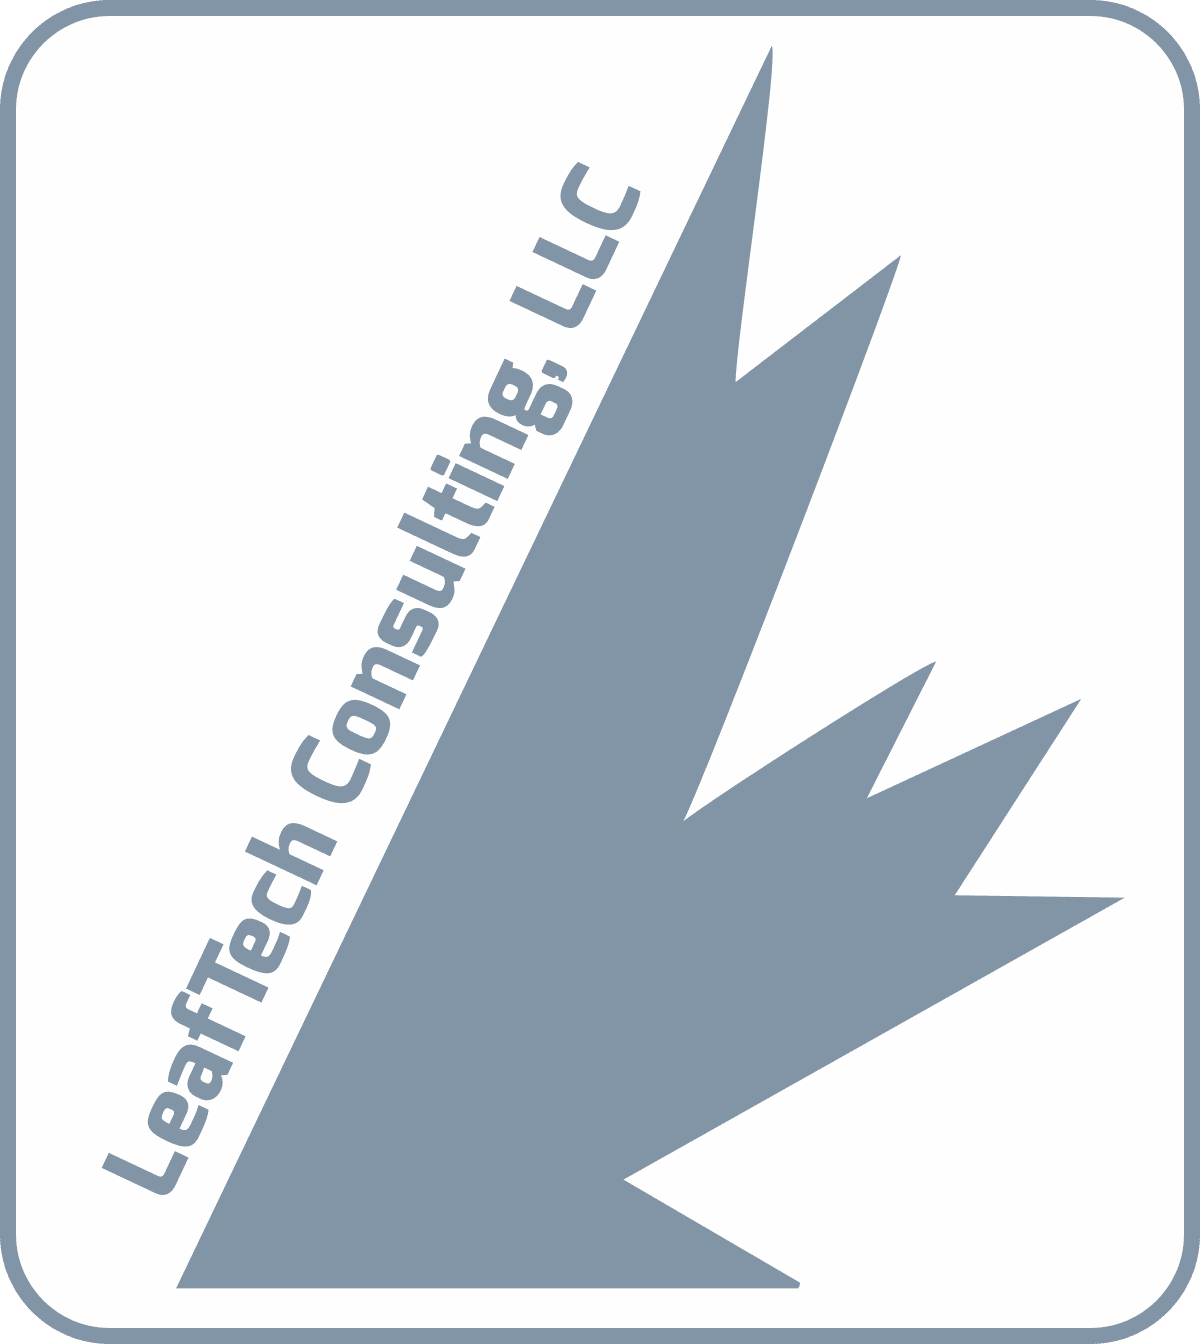 Retina logo LeafTech IT Consulting and services Centennial CO